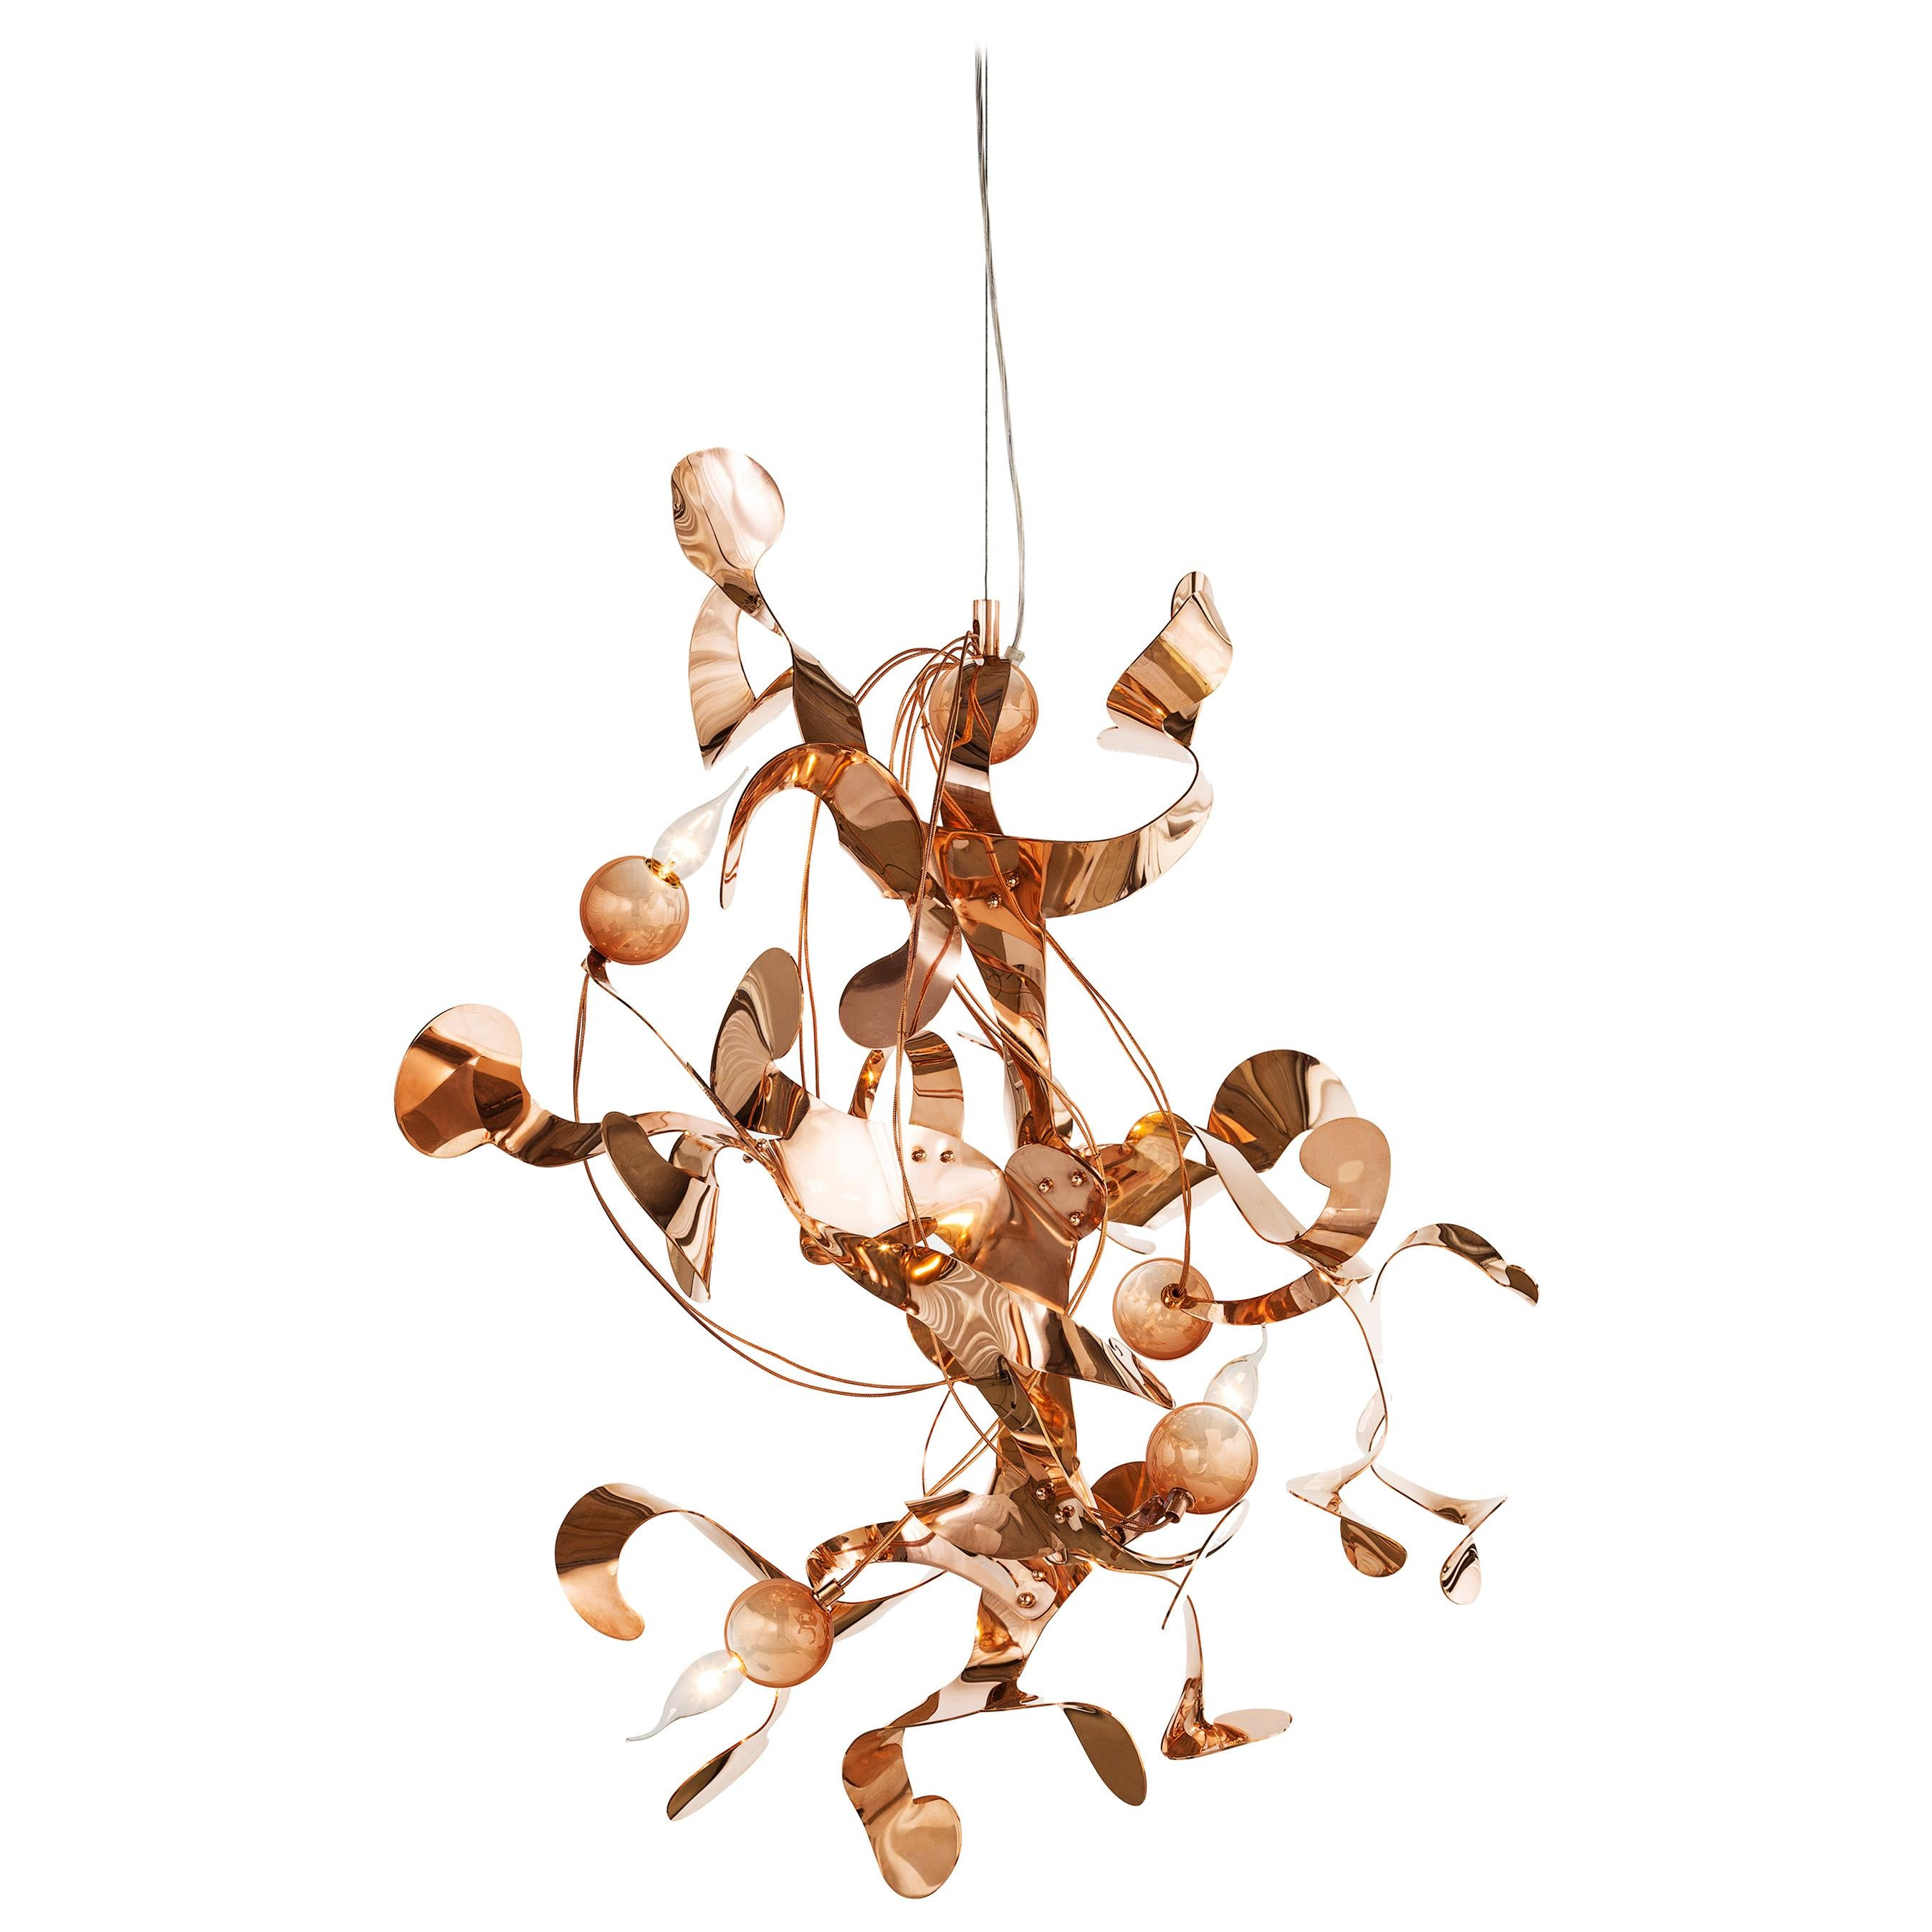 Modern Pendant in a Copper Finish, Kelp Collection, by Brand van Egmond